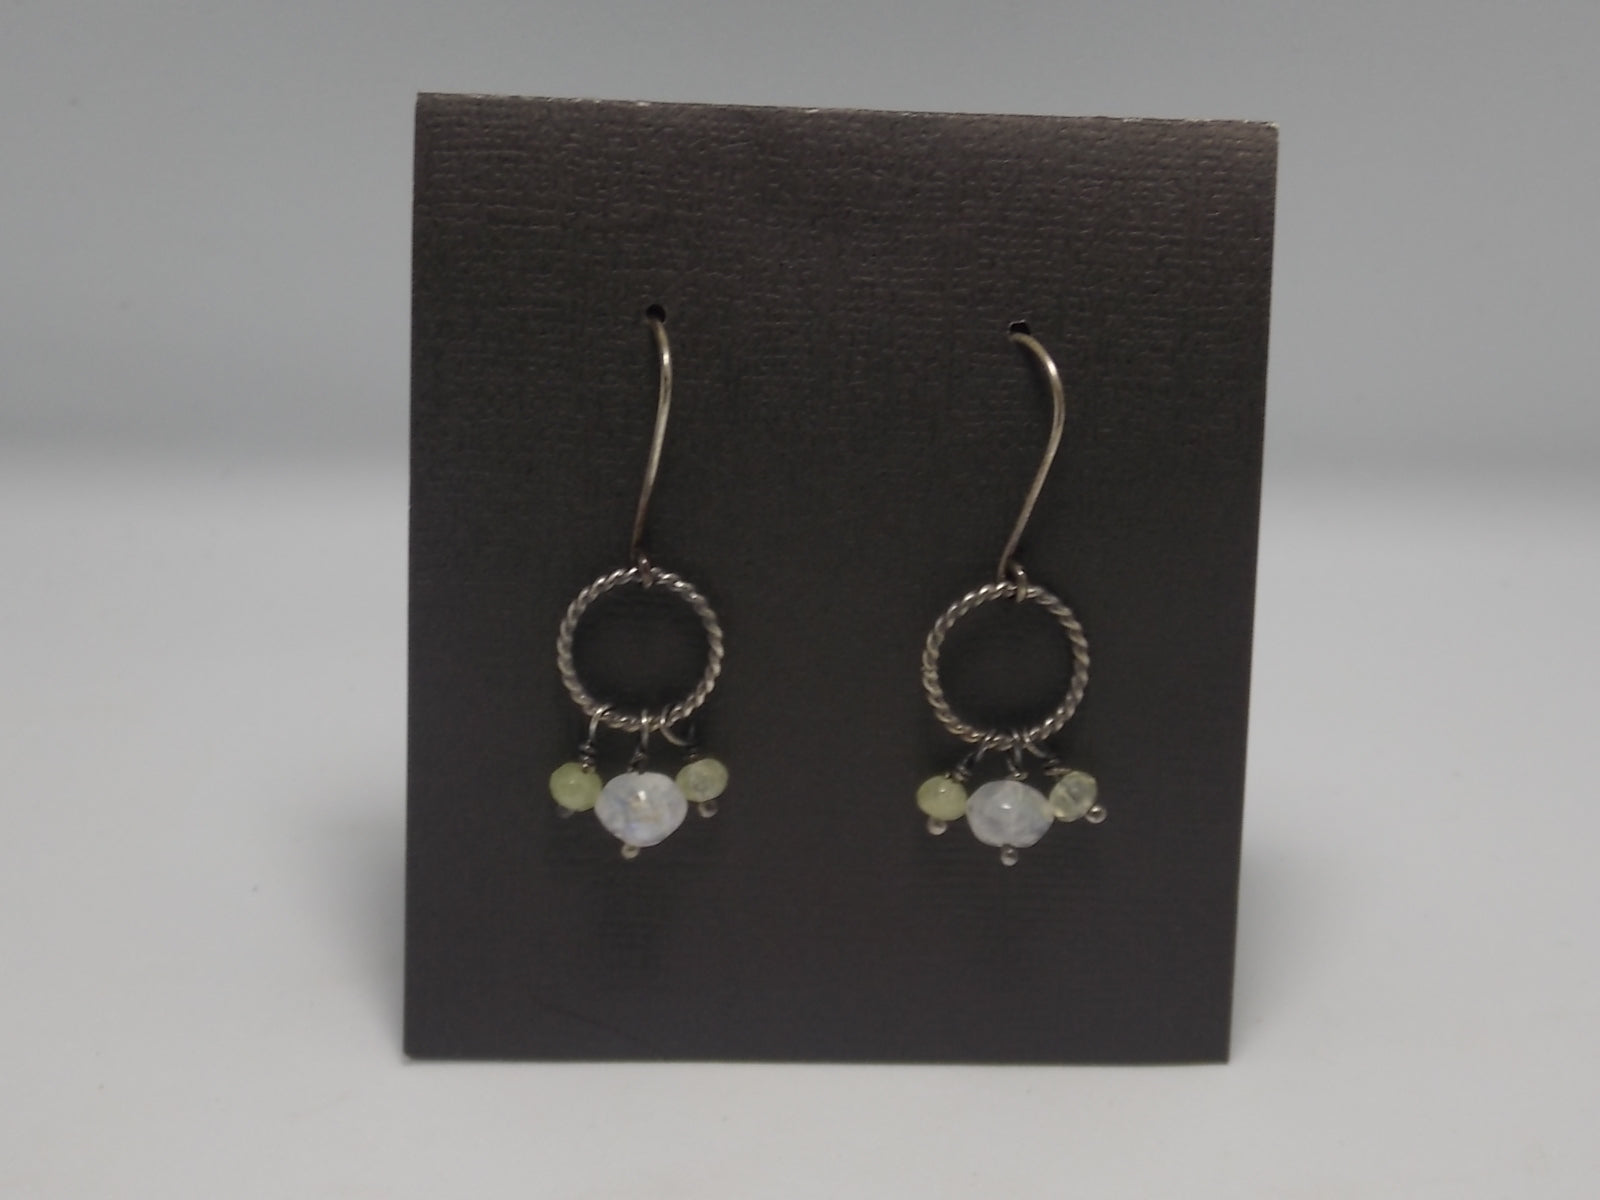 Prasiolite and Moonstone twist ring earrings by Rebecca Wheat